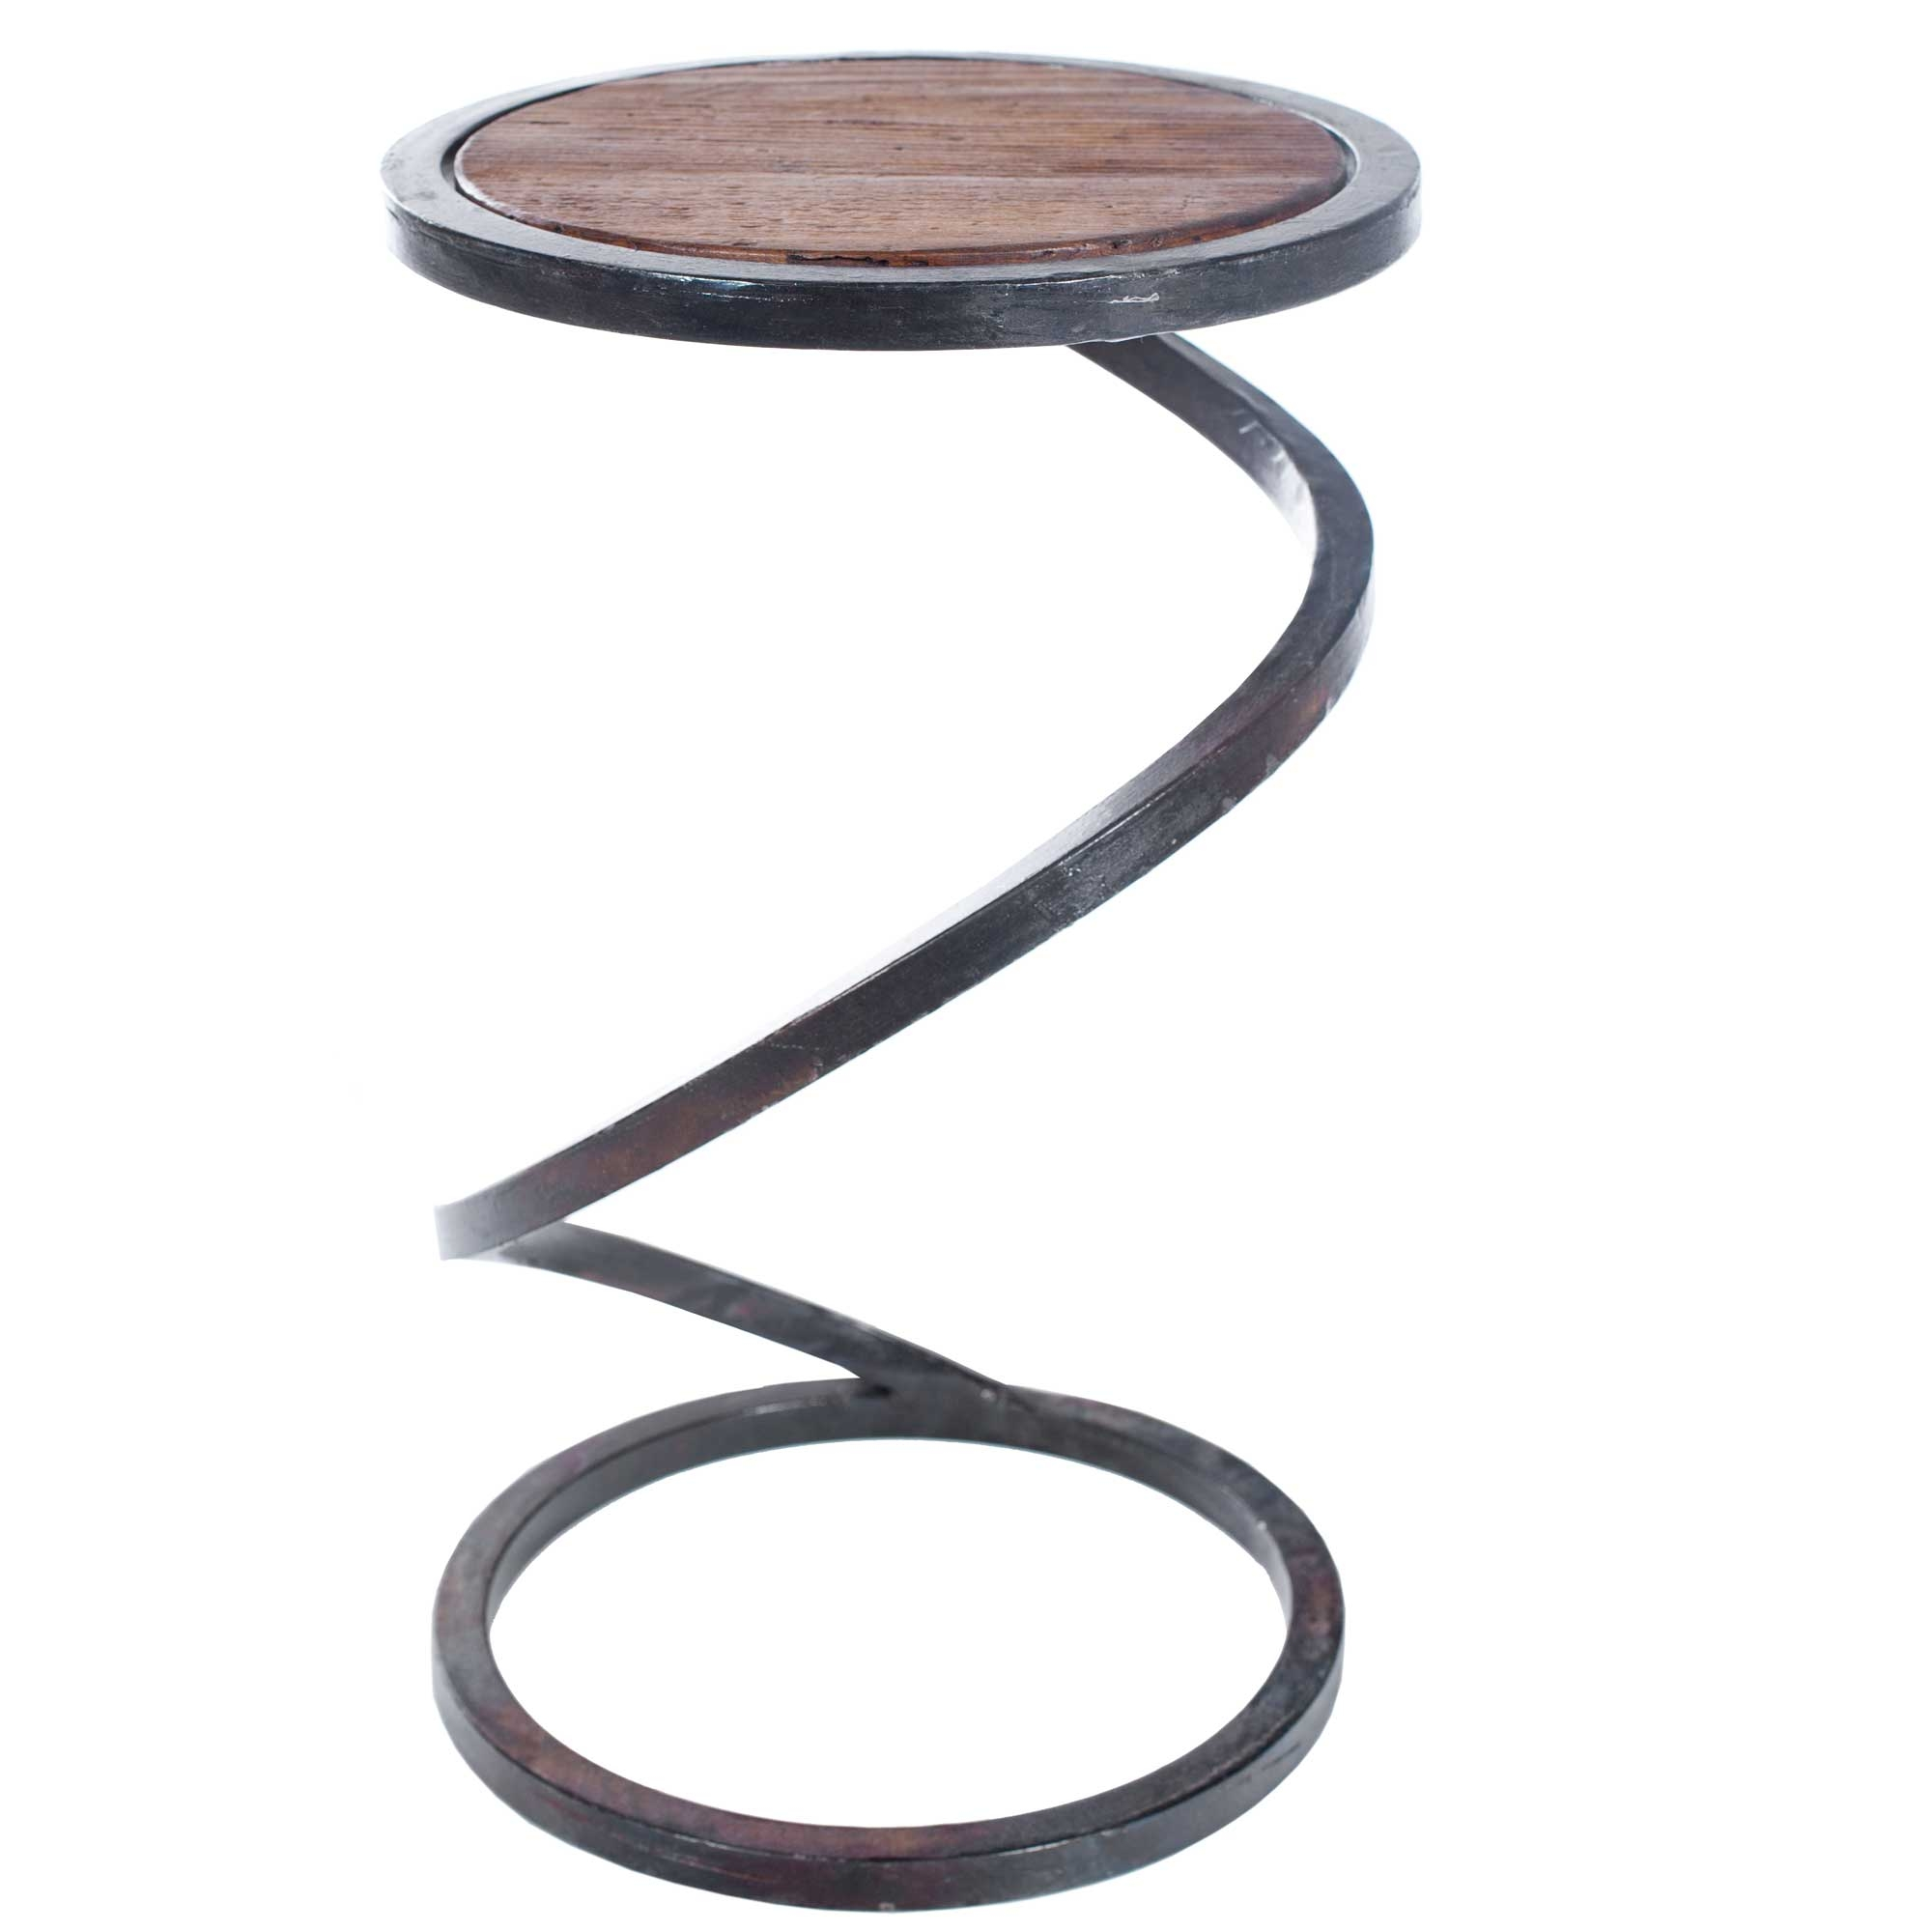 spiral round iron accent table with reclaimed wood top twi metal wrought base and larger telephone drawers comfortable outdoor chairs living room essentials cordless lamps hay